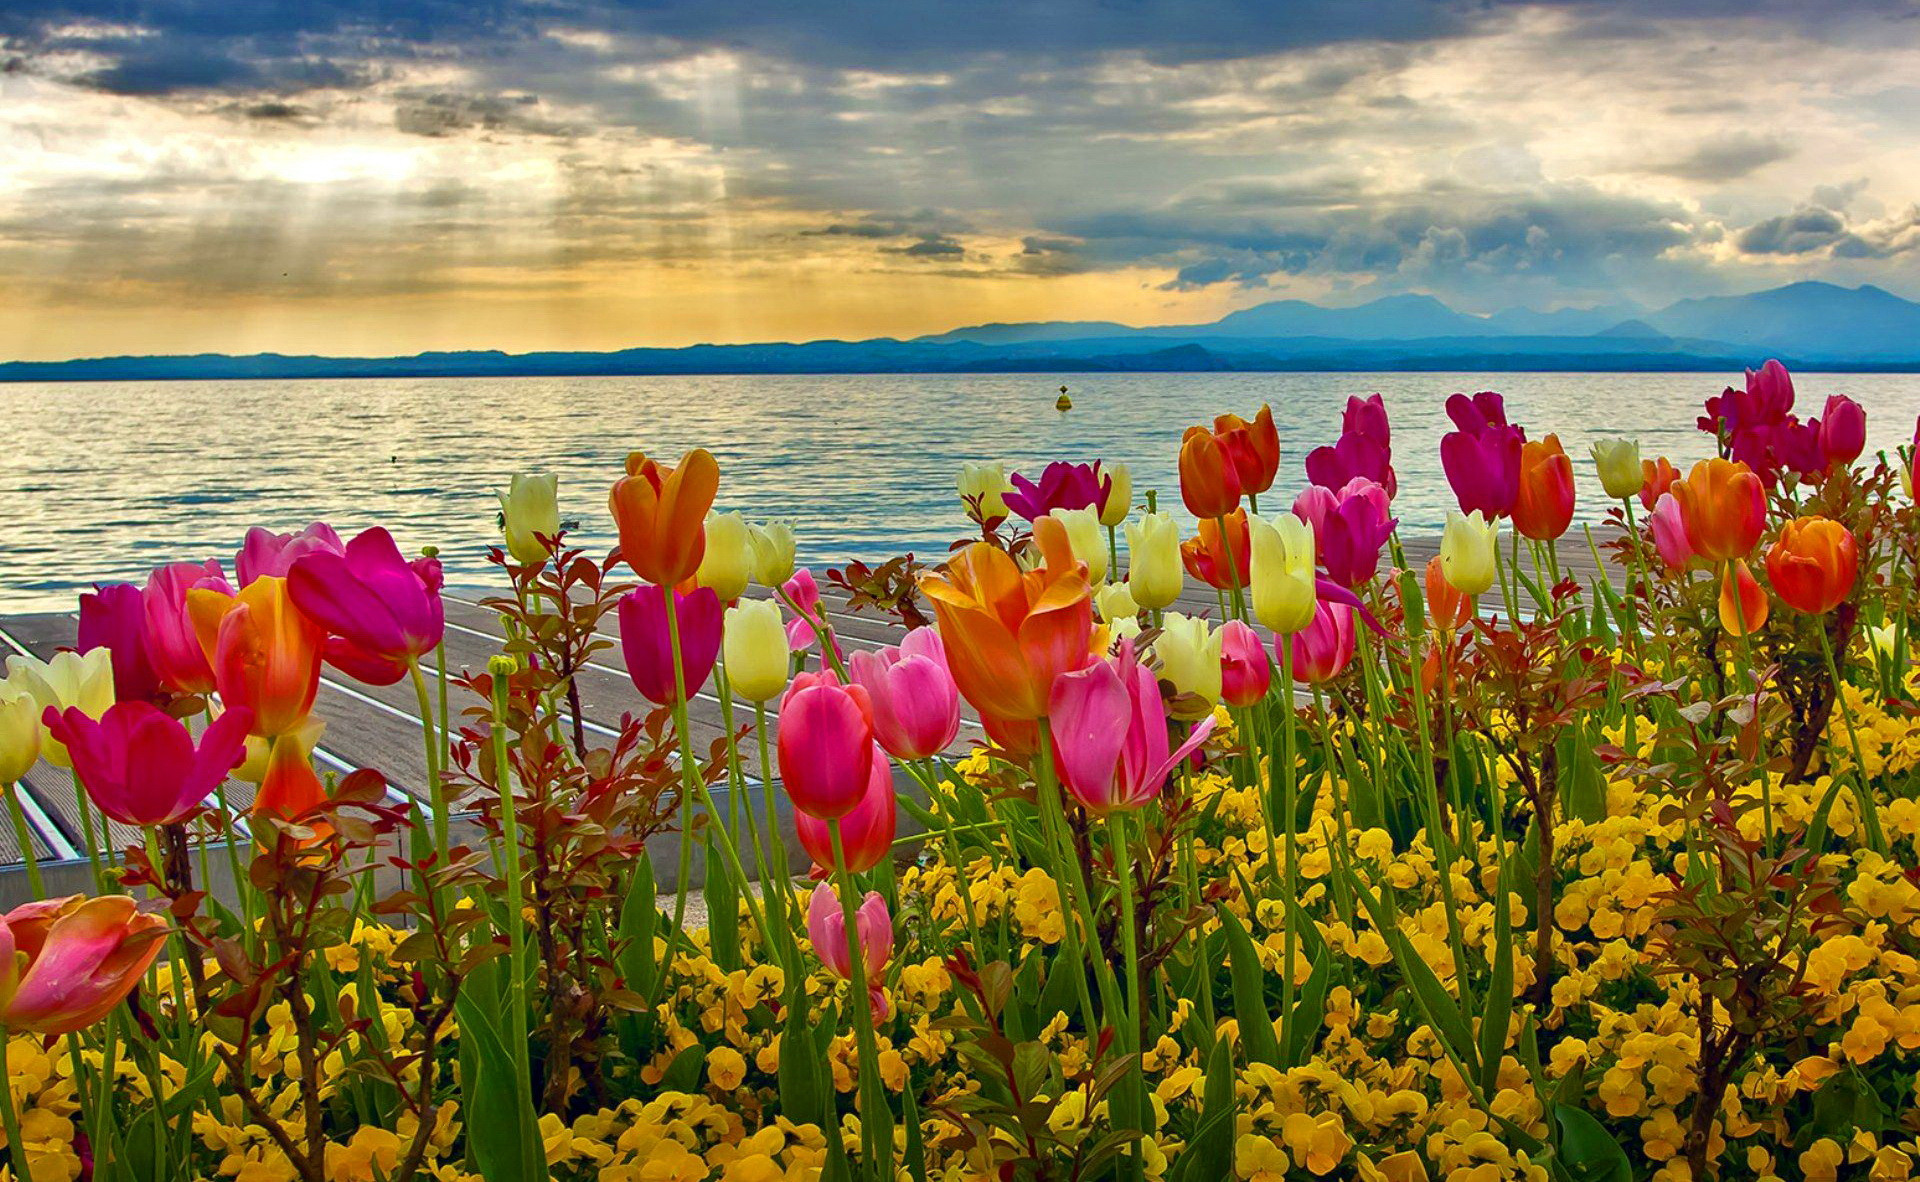 Beautiful Spring images download | PixelsTalk Net